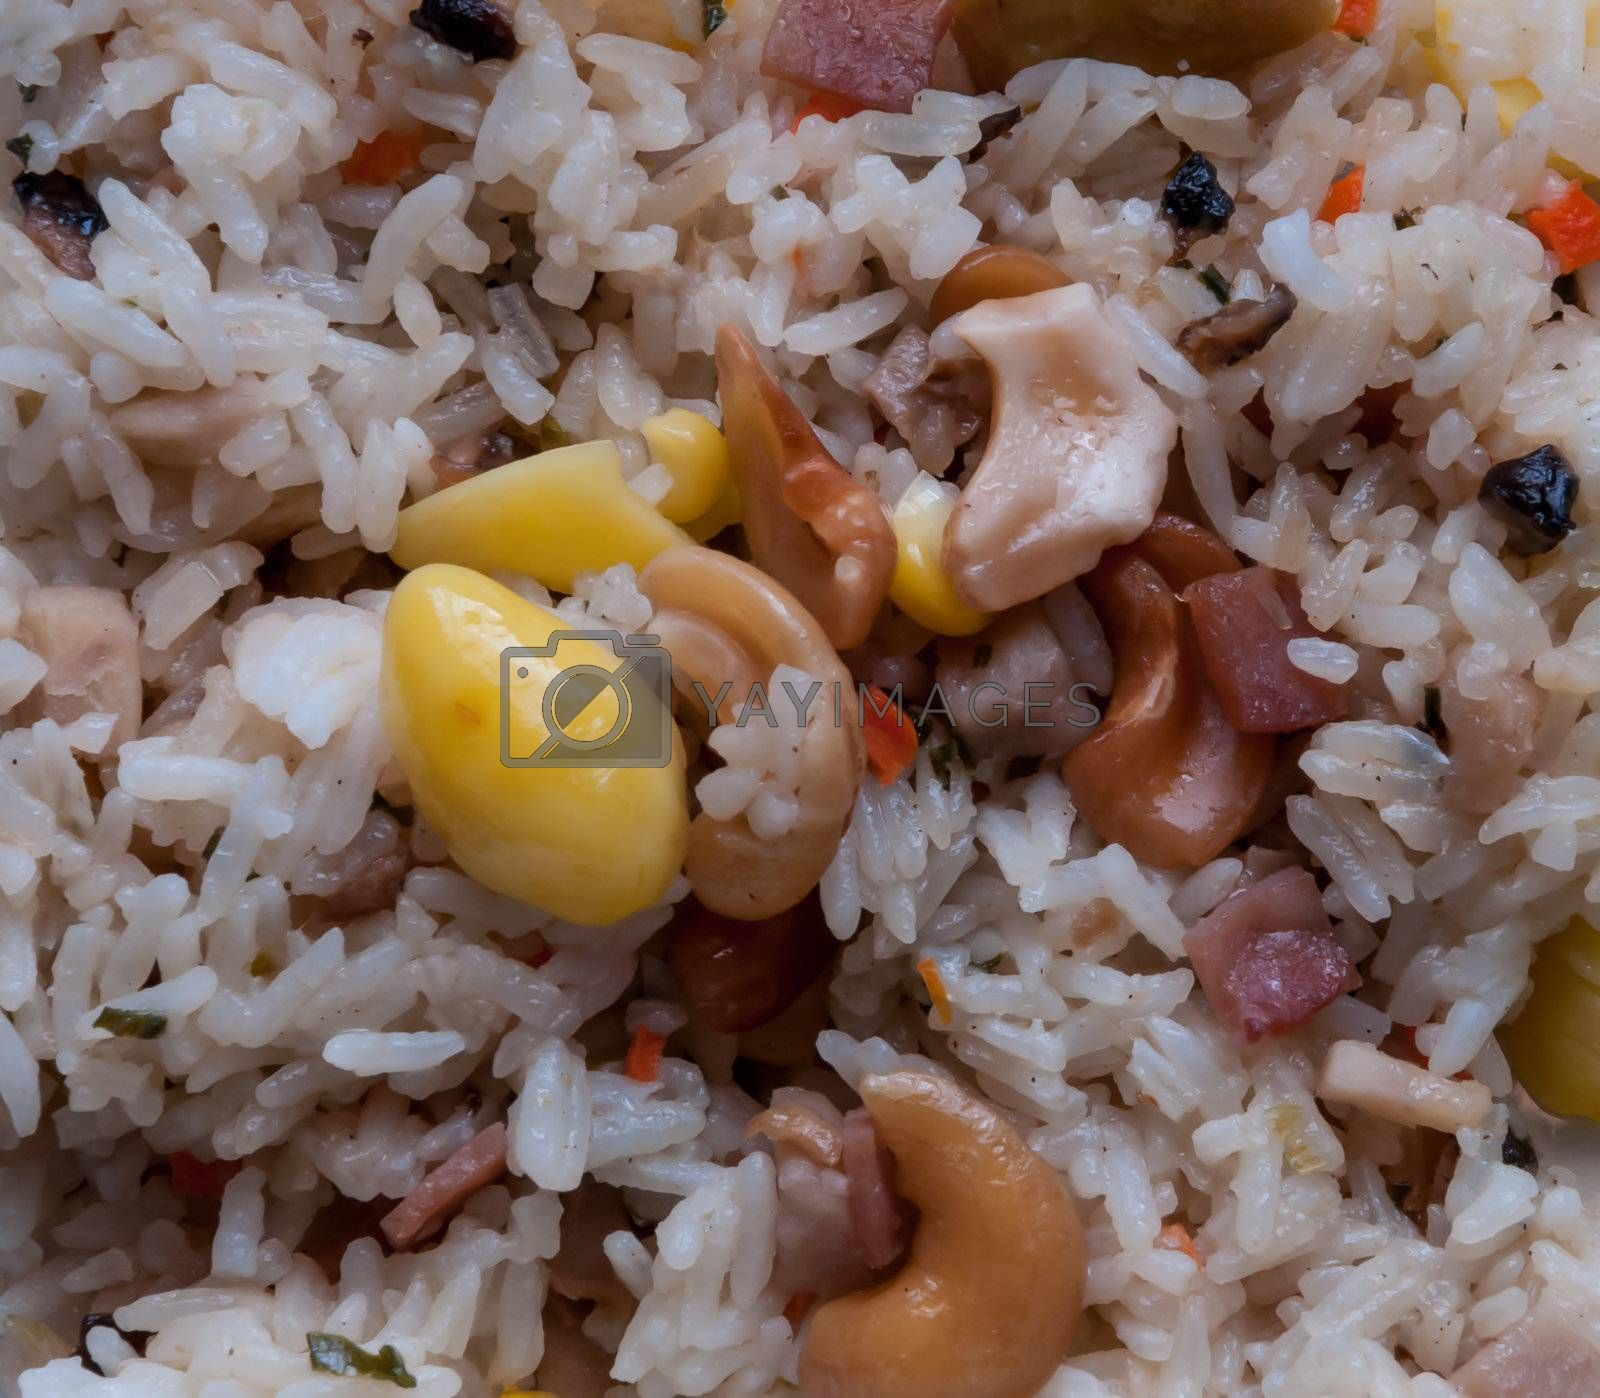 Fired rice is composed of ginkgo, cashew nut, ham, corn and raisin